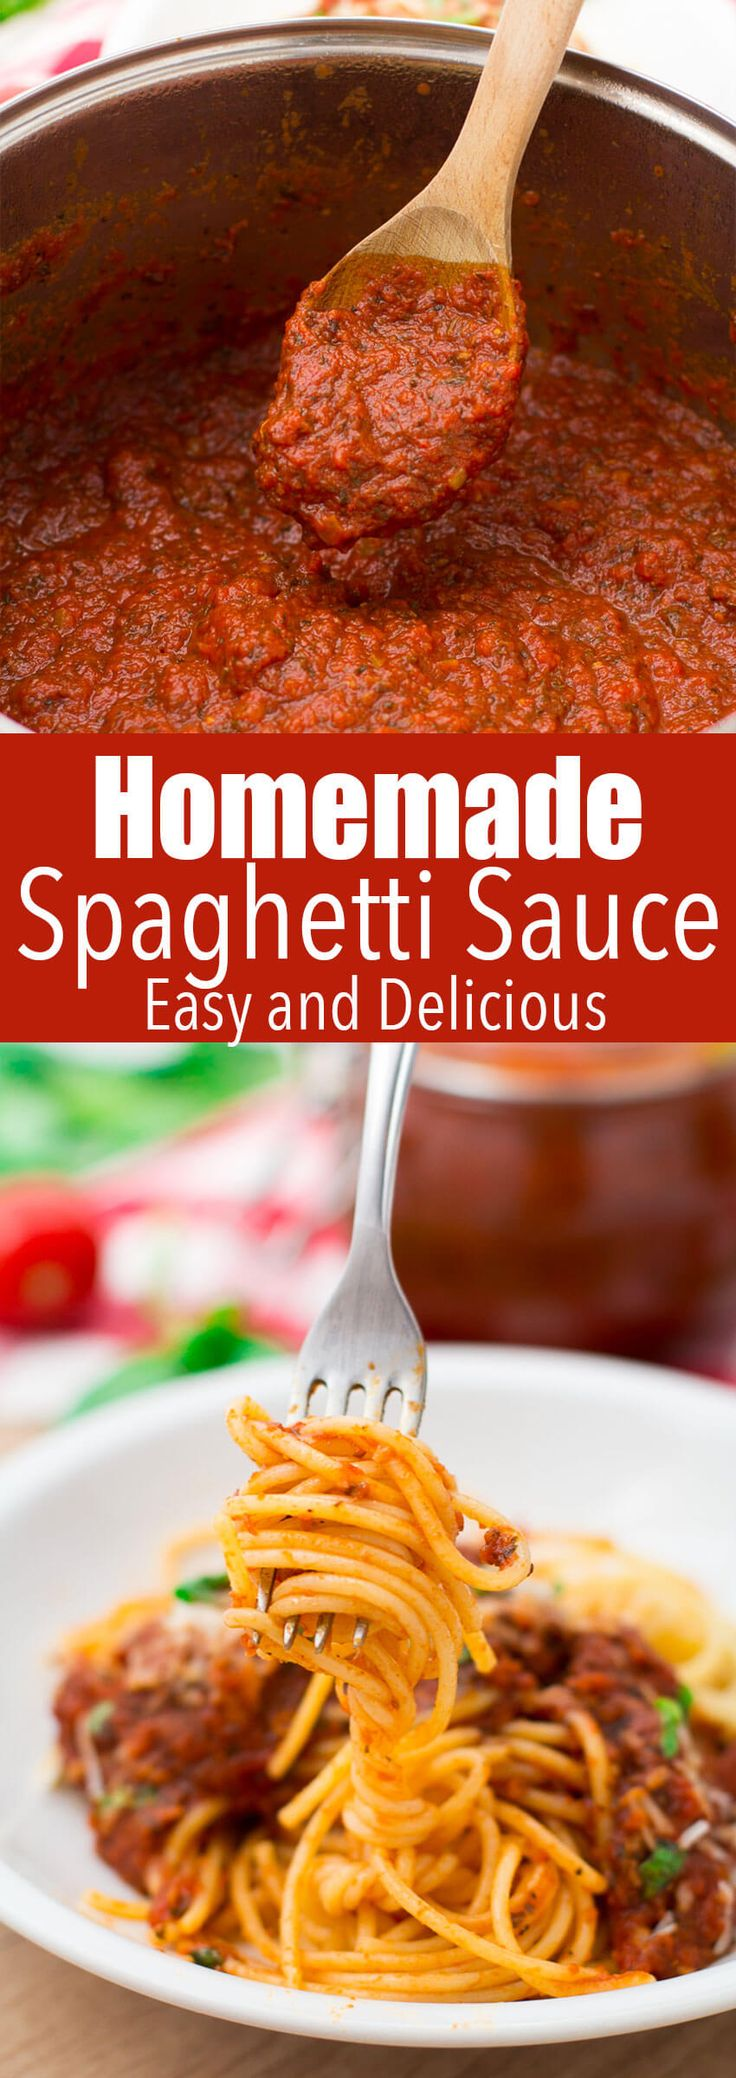 Homemade spaghetti sauce that is simmered to perfection, and makes a great weeknight dinner